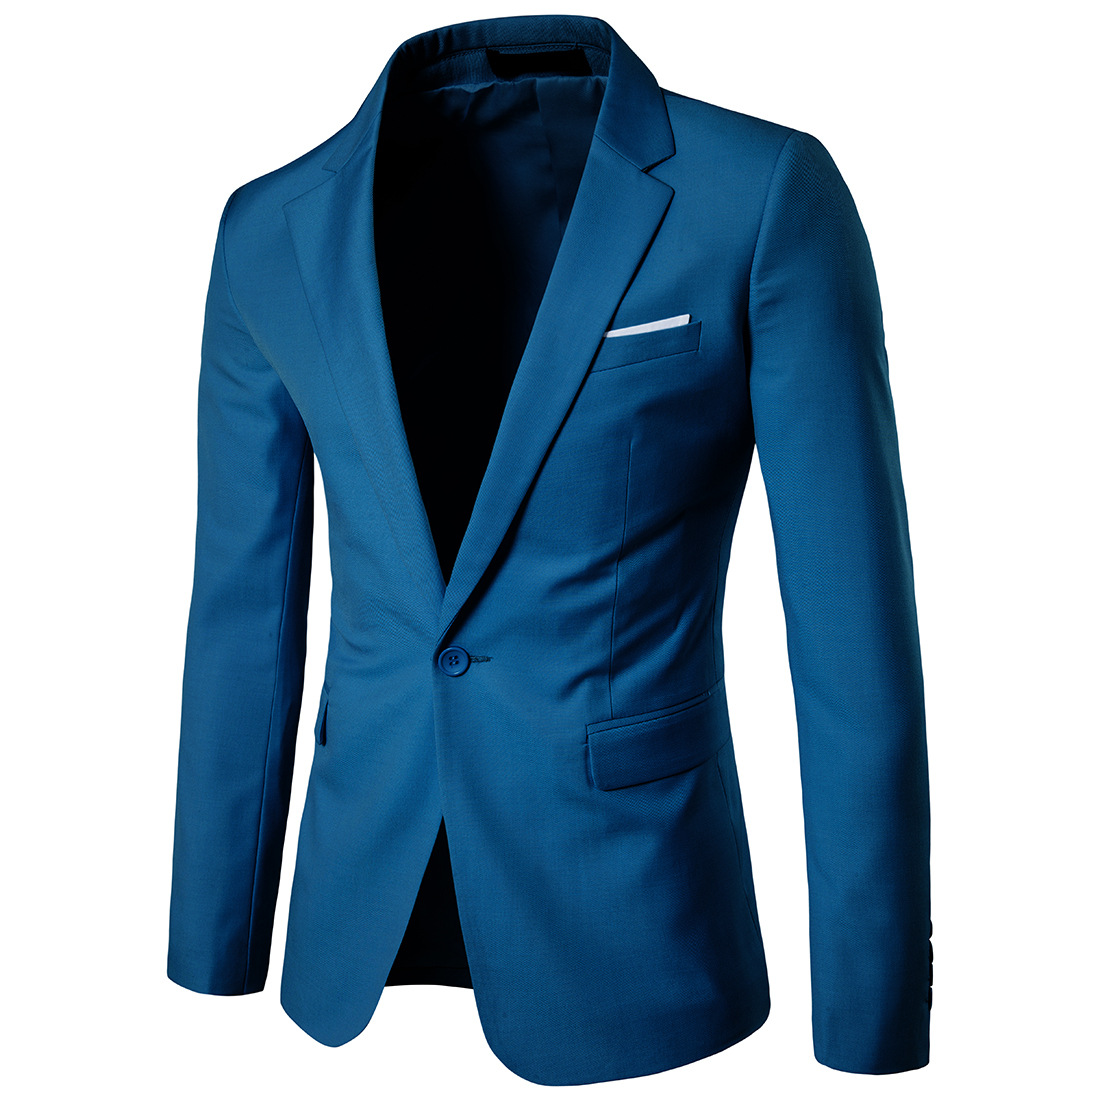 2019 Mens Korea Slim Fashion Blazers Suit Jacket Male Casual Plus Size Coat Wedding Dress Black Sea Blue Wine Red Suit Coat Men